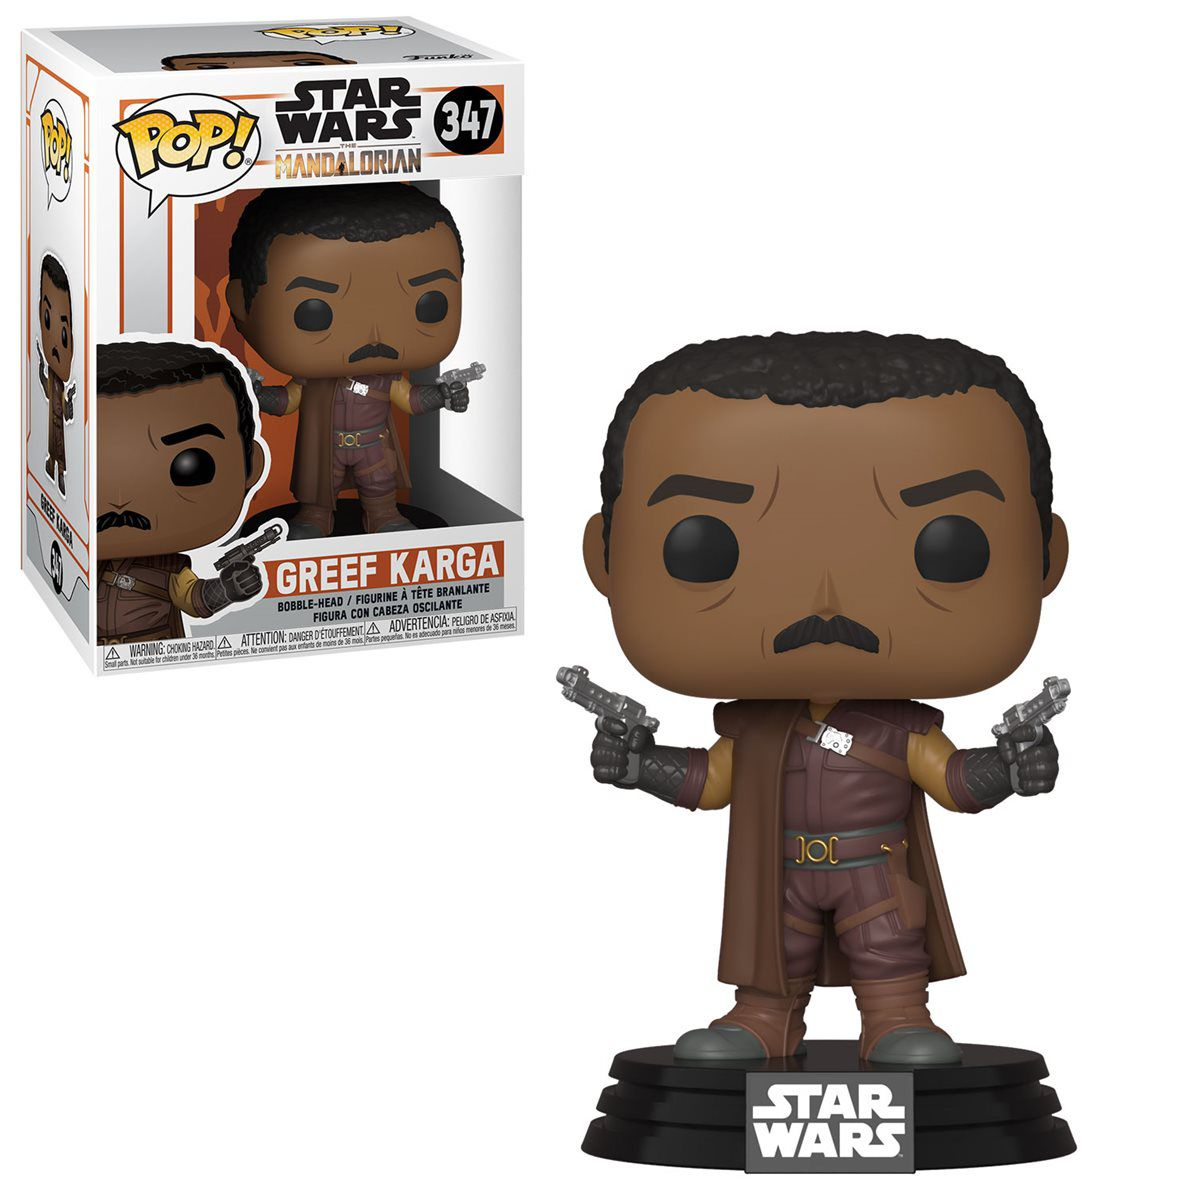 PRÉ VENDA: Funko Pop! Greef Karga: The Mandalorian (Star Wars) Disney+ #347 - Funko